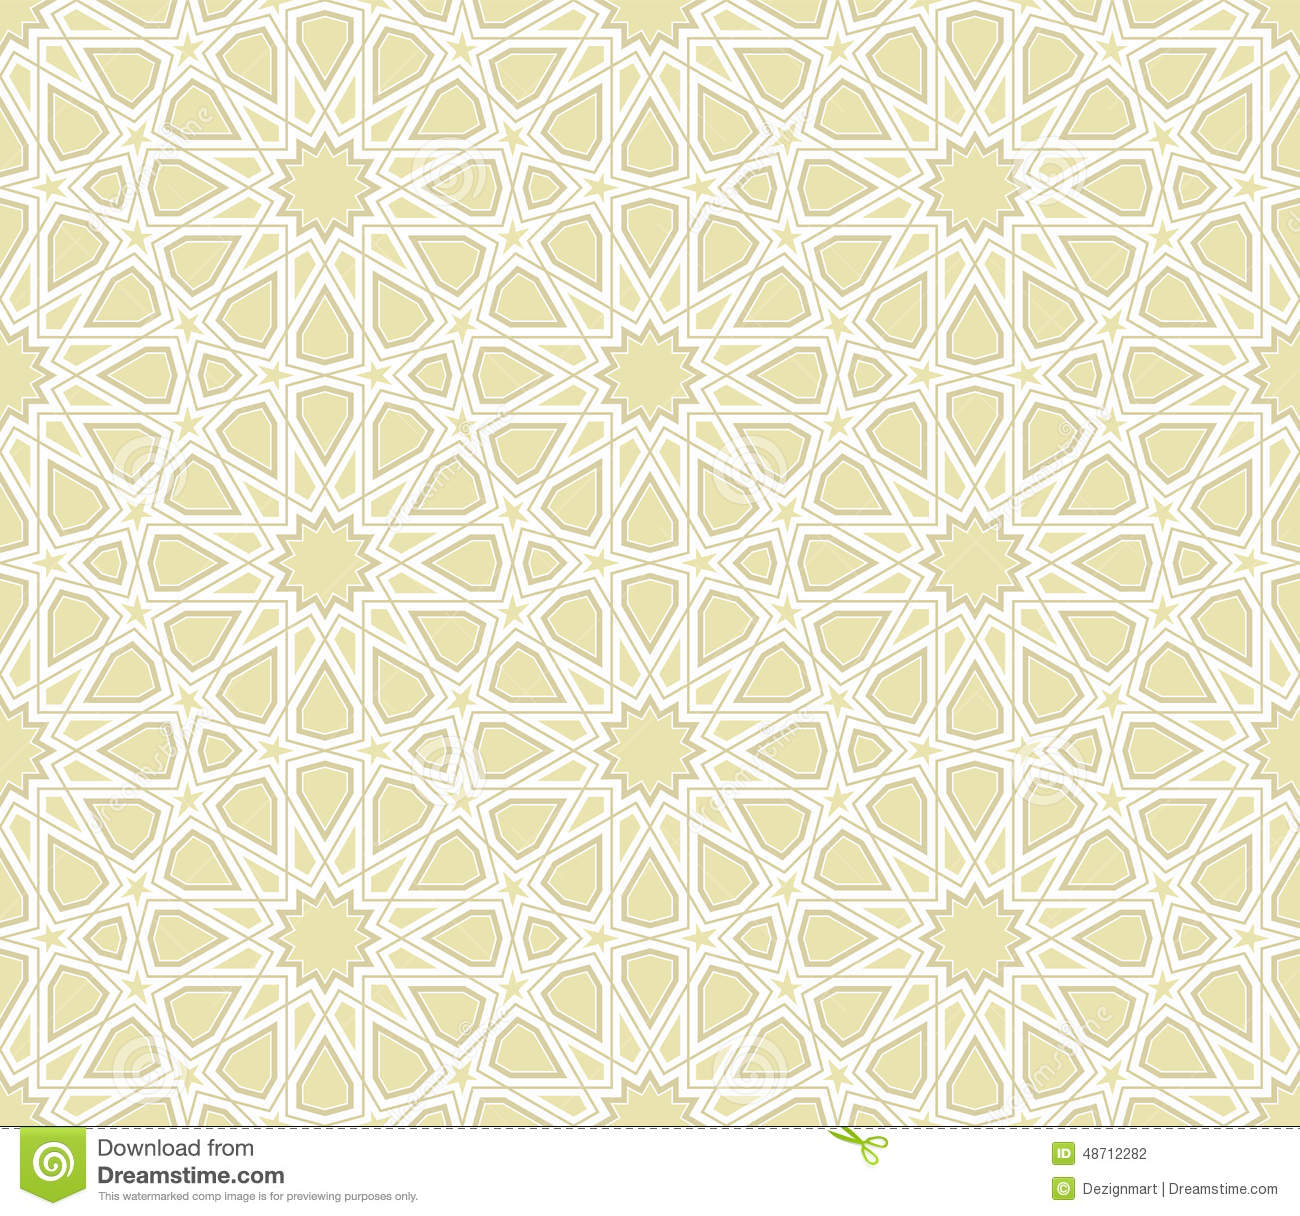 Islamic Star Pattern With Light Background Stock Vector - Image ...